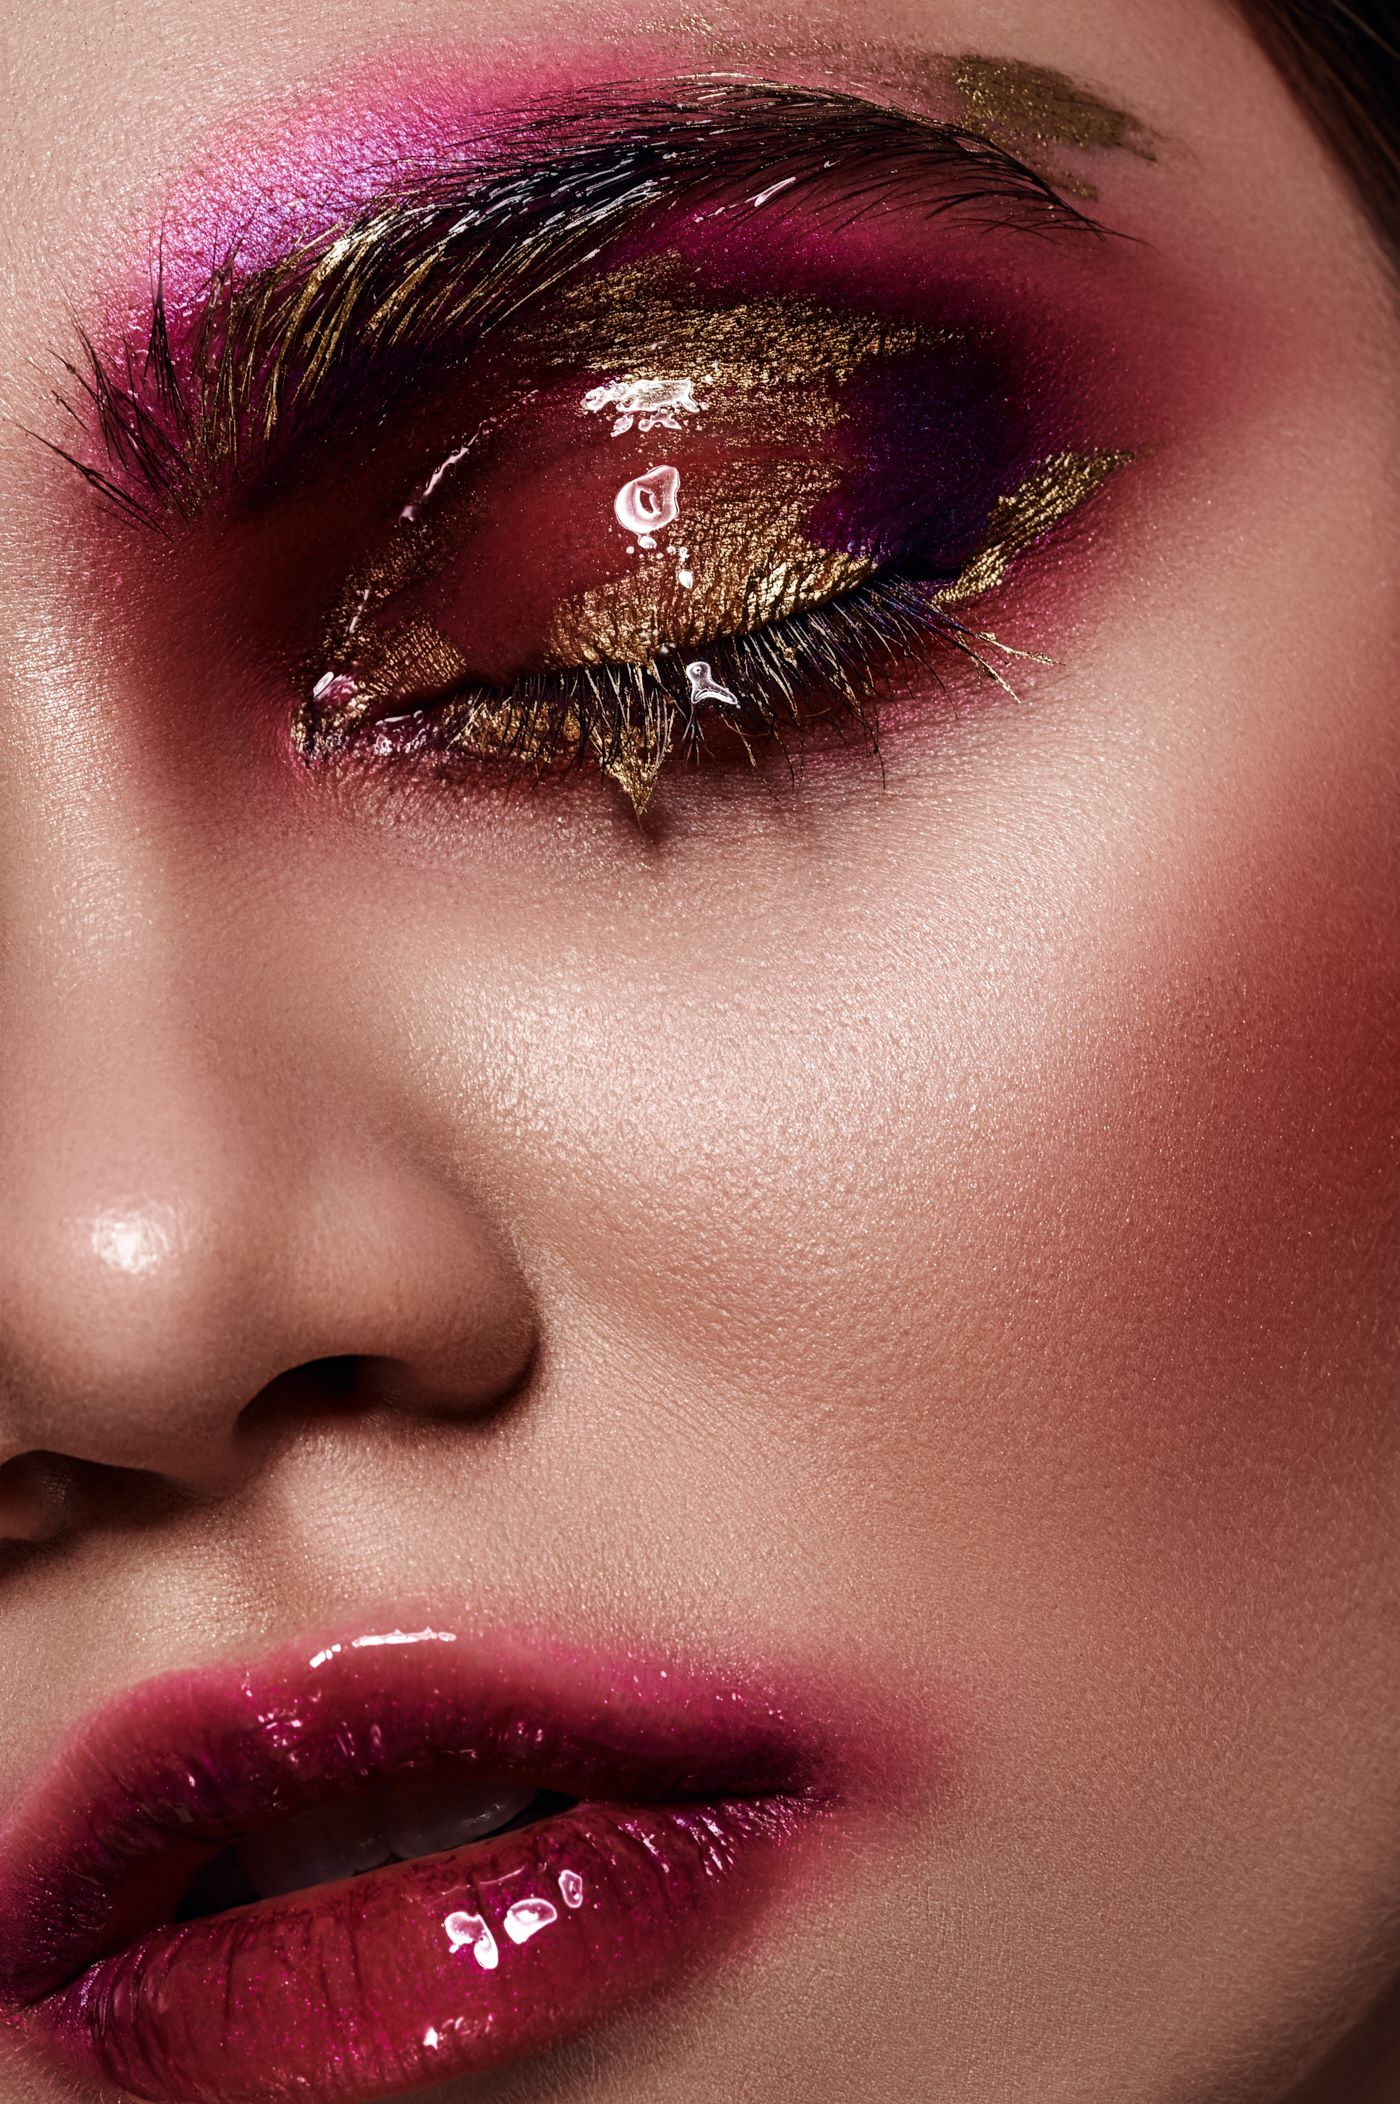 """Check out this Behance project """"Beauty Woman with liquid"""